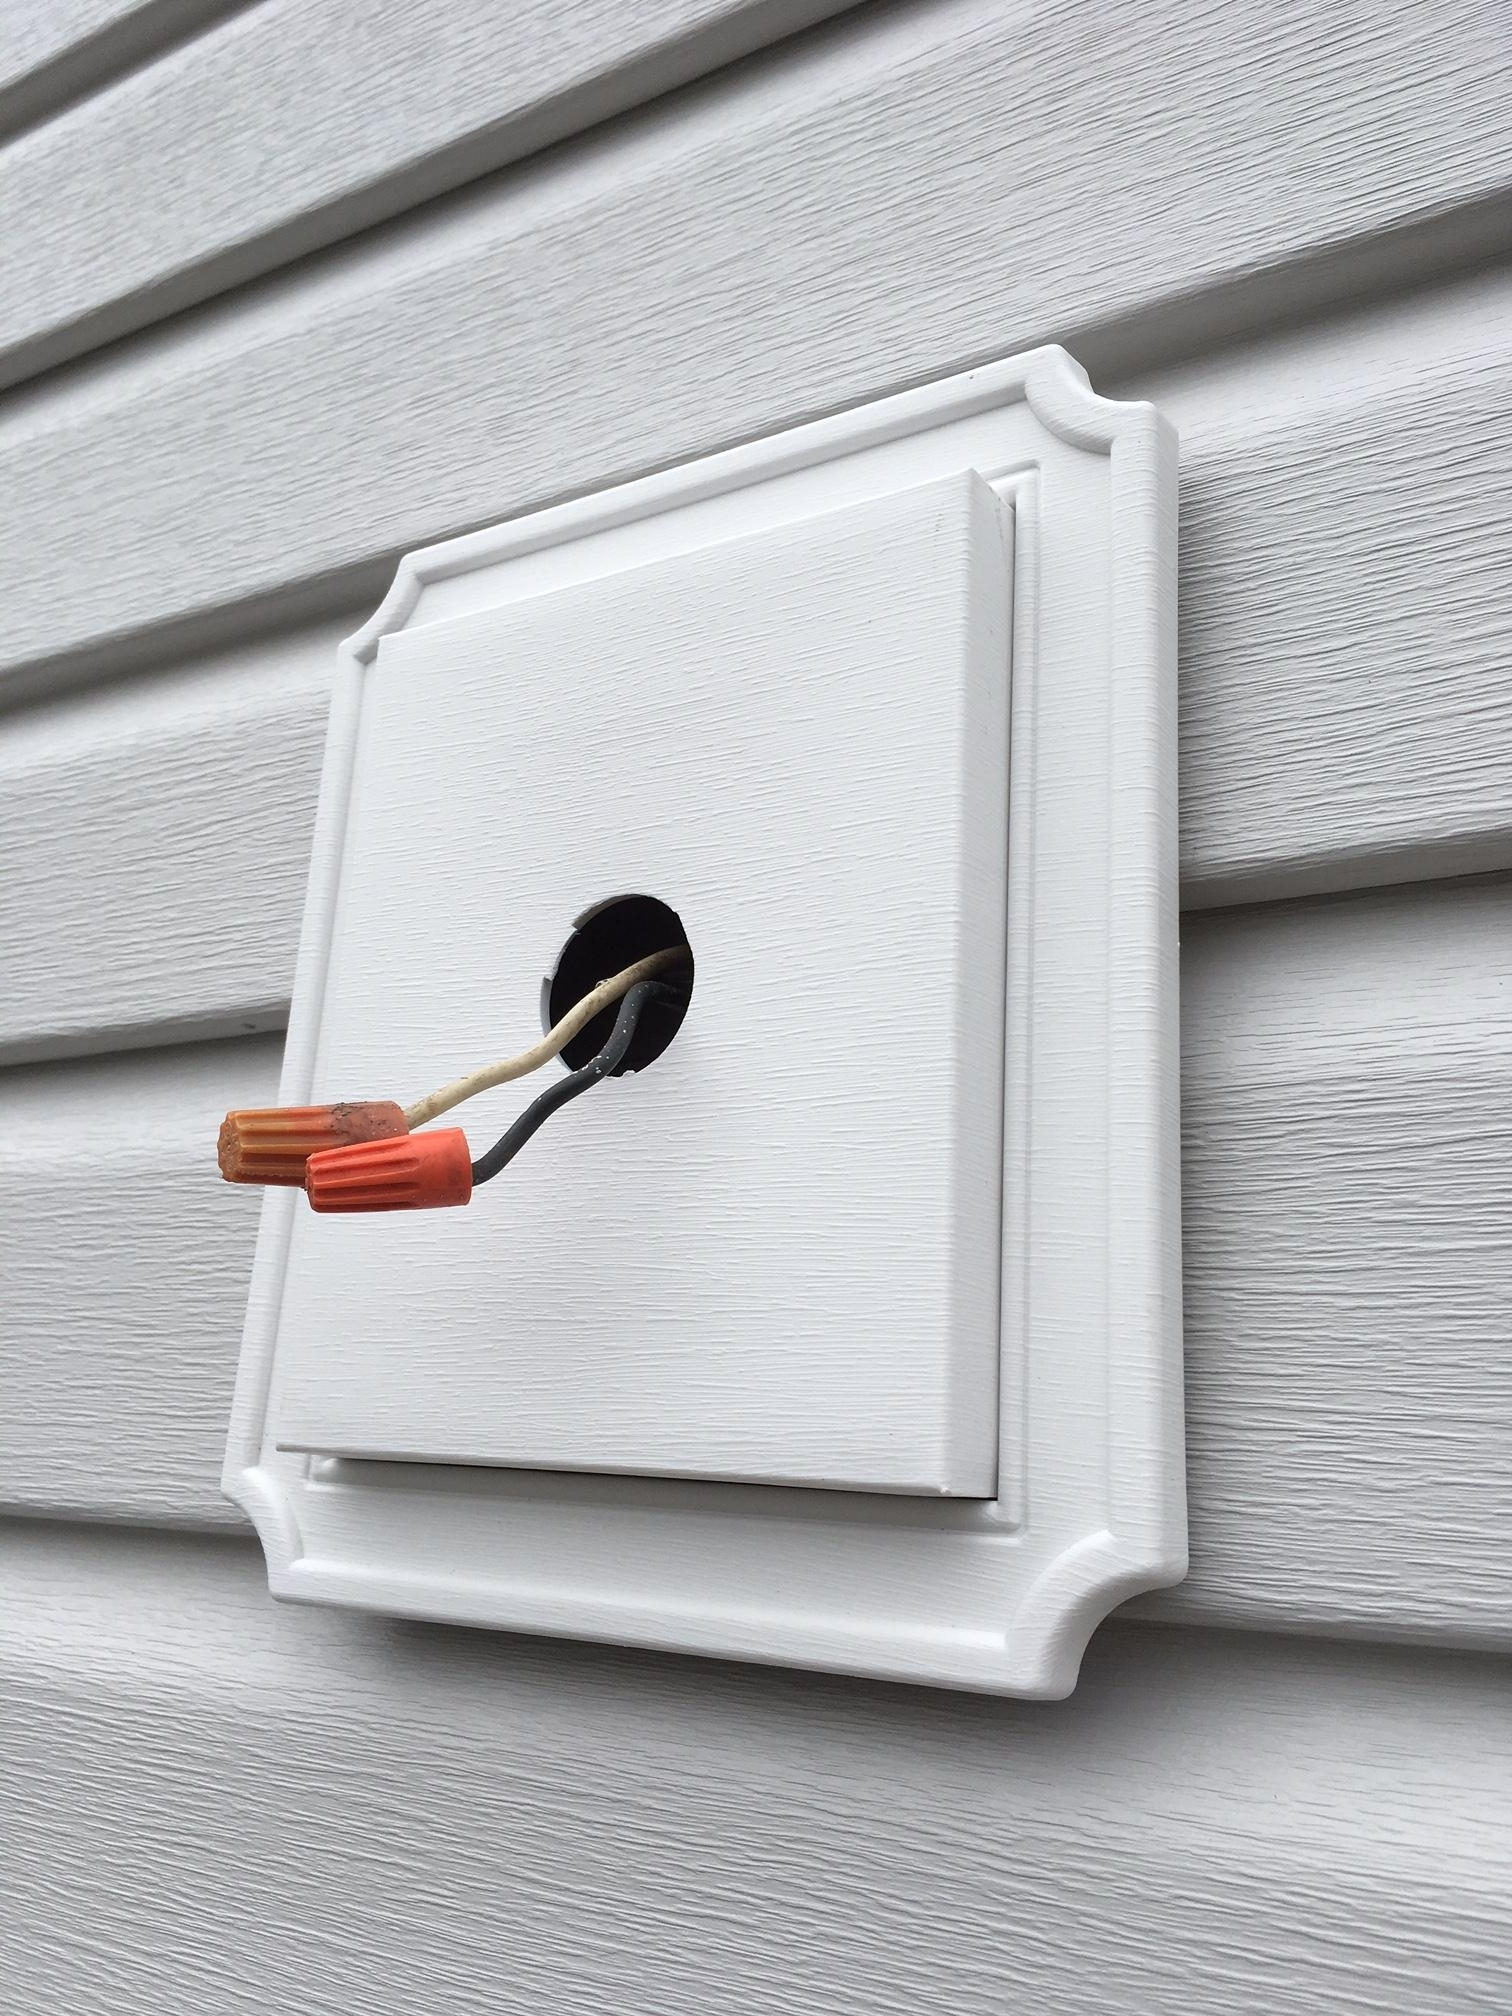 Best And Newest Lighting – Exterior Lights On New Siding, No Electrical Box To Screw With Hanging Outdoor Lights On Vinyl Siding (View 6 of 20)